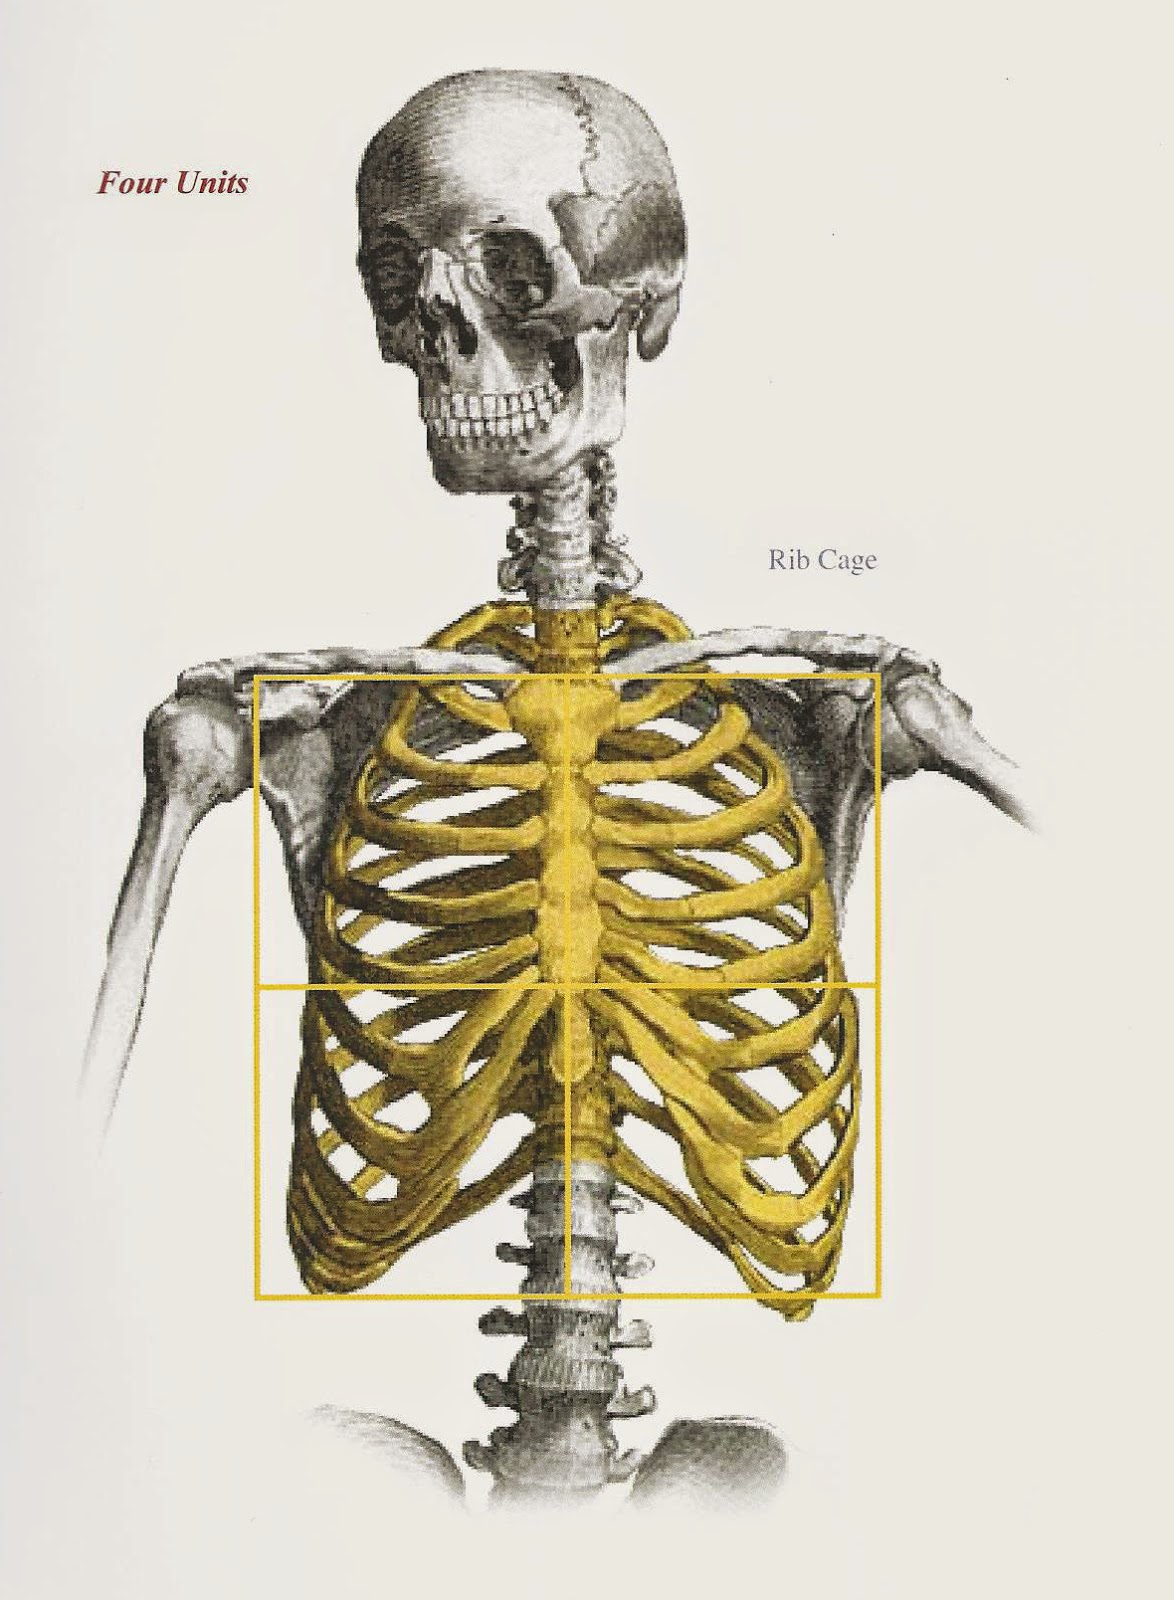 Studio Incamminati Blog On Proportion And Using The Cranial Index